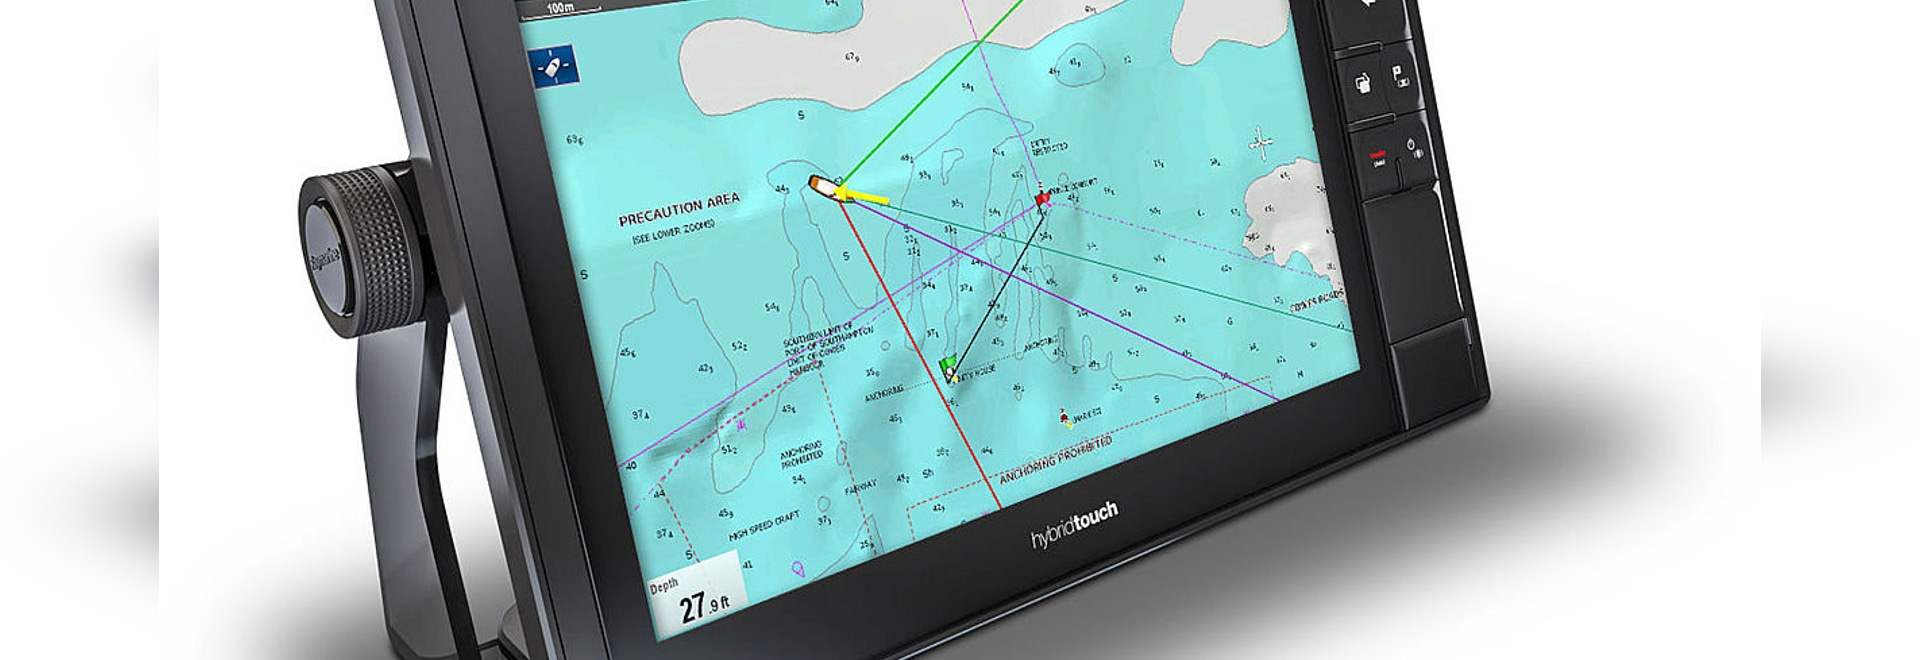 Raymarine Upgrades LightHouse II Operating System with New Sailing Features